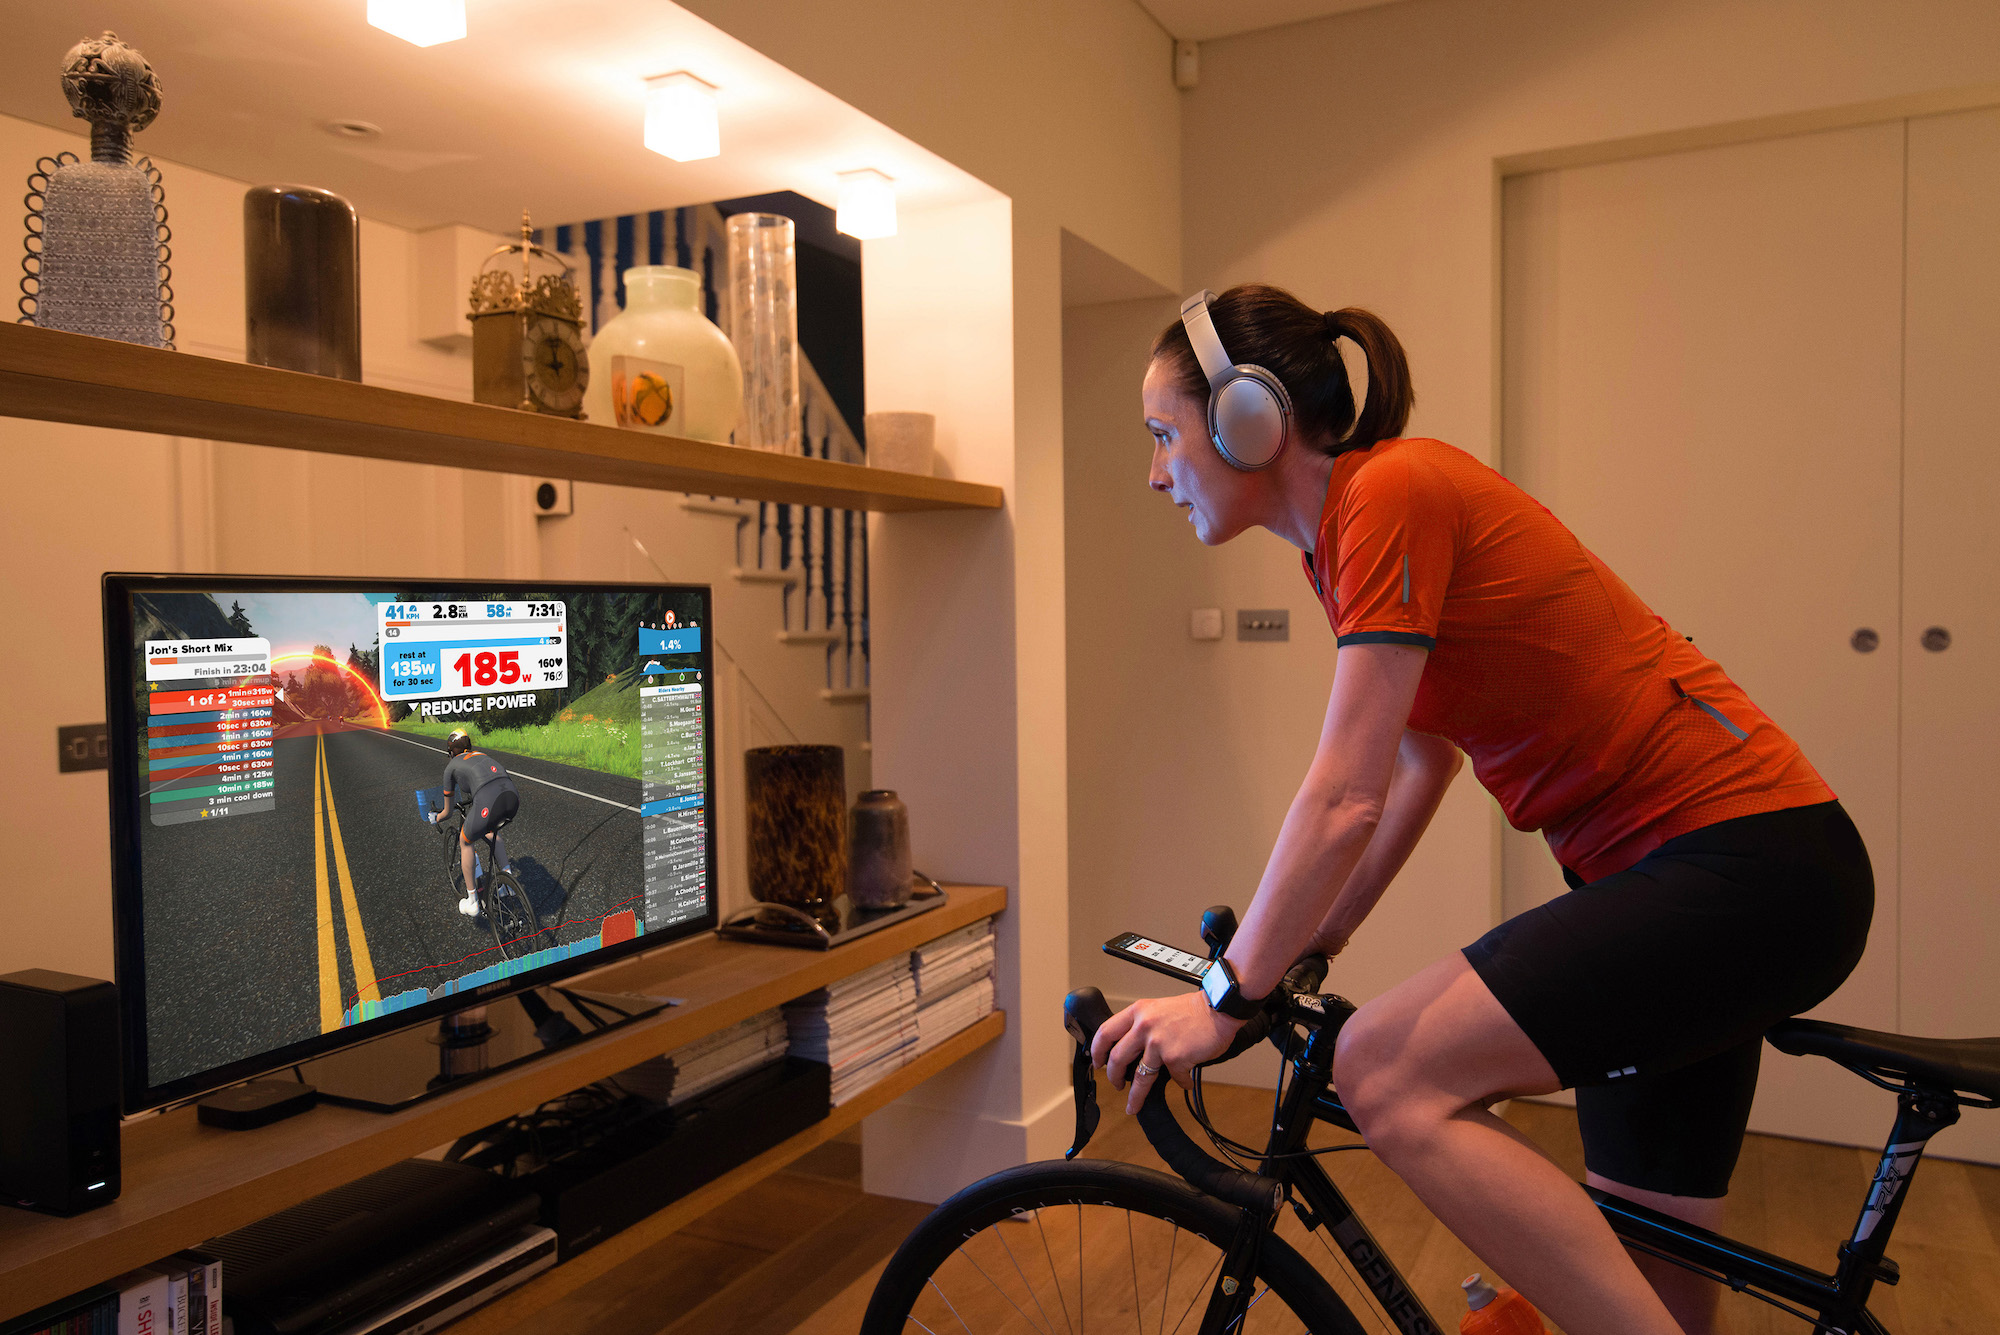 Zwift_Cycling-Setup-TV_199916372_272178211.jpg